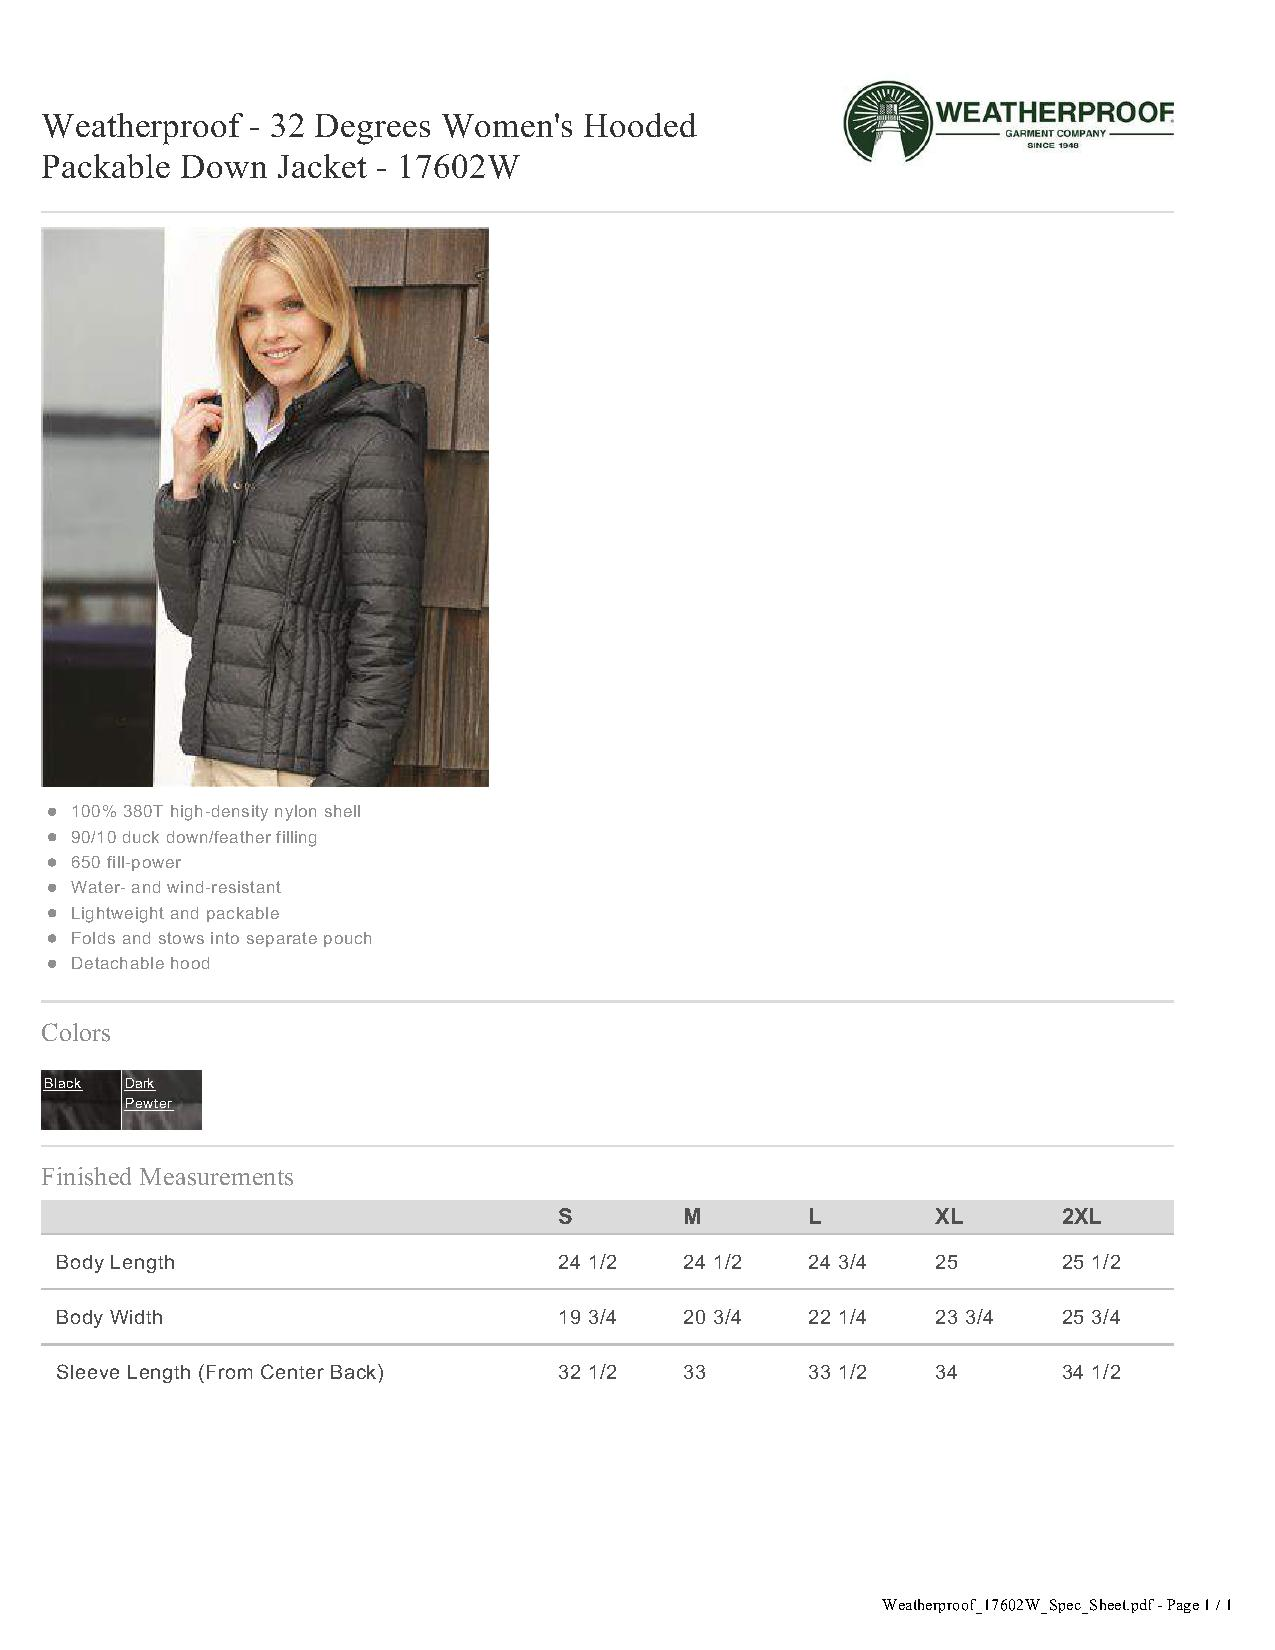 d07552a104a8 Weatherproof 17602W - 32 Degrees Women s Hooded Packable Down Jacket ...